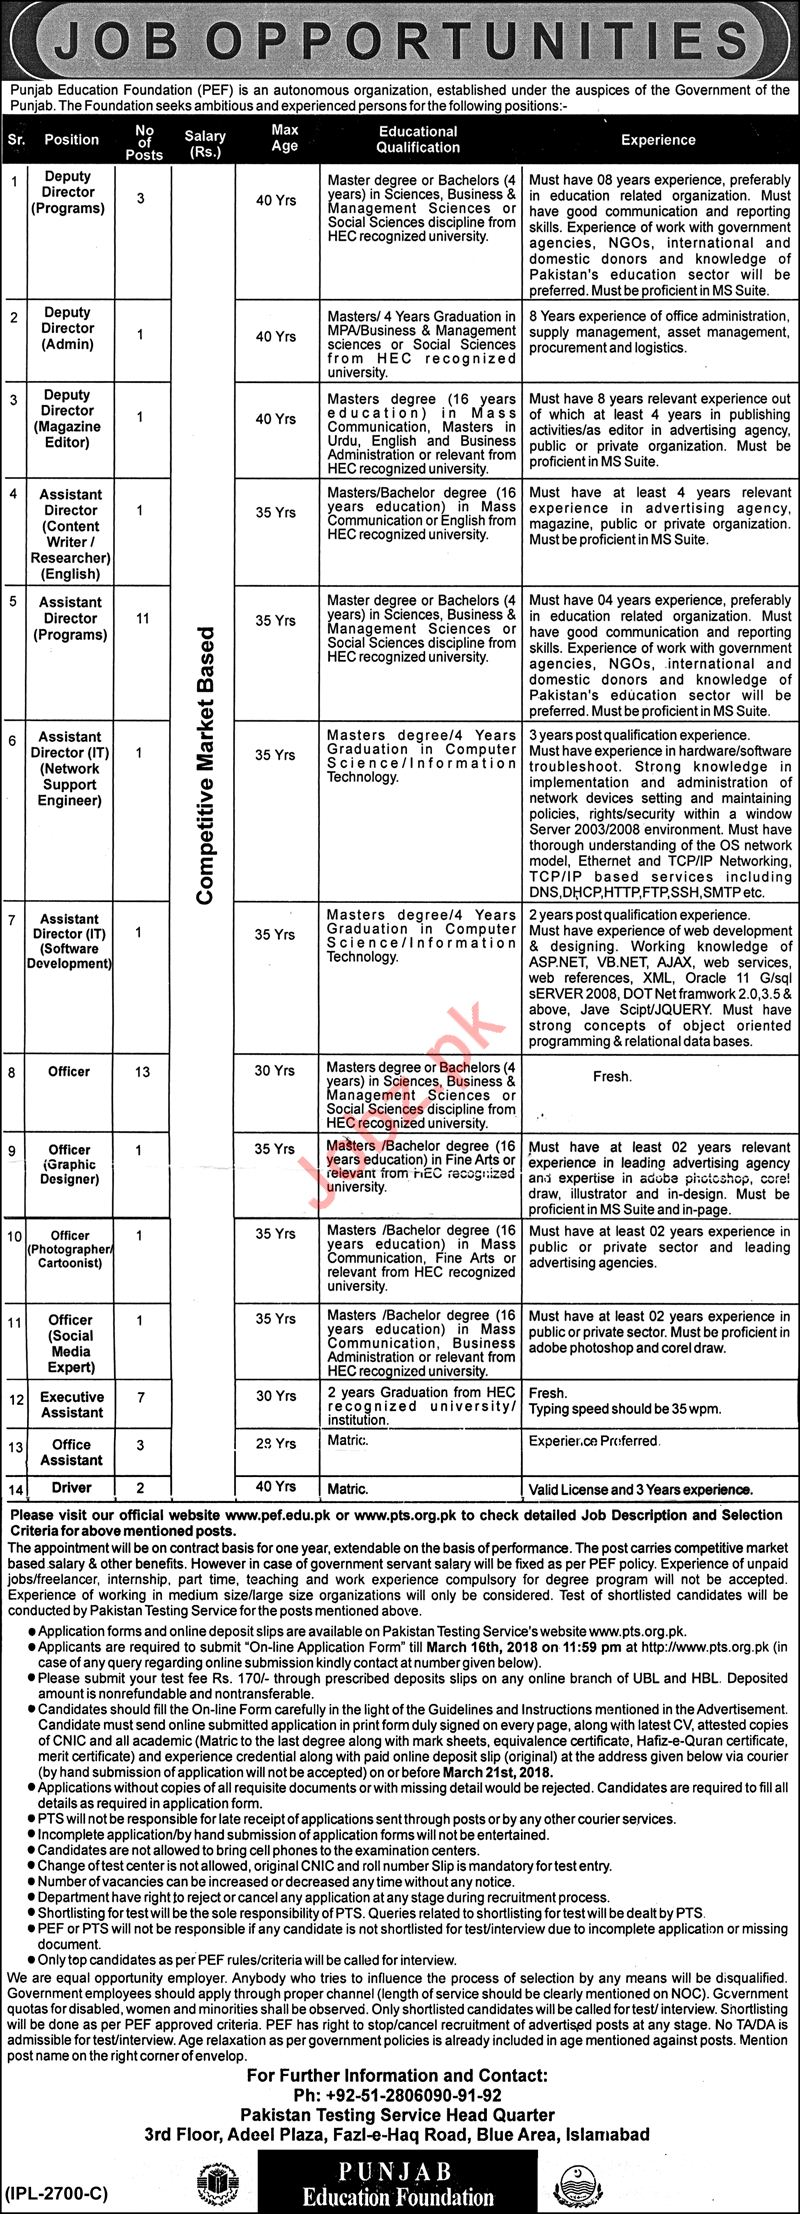 Punjab Education Foundation PEF NGO Jobs 2018 Via PTS